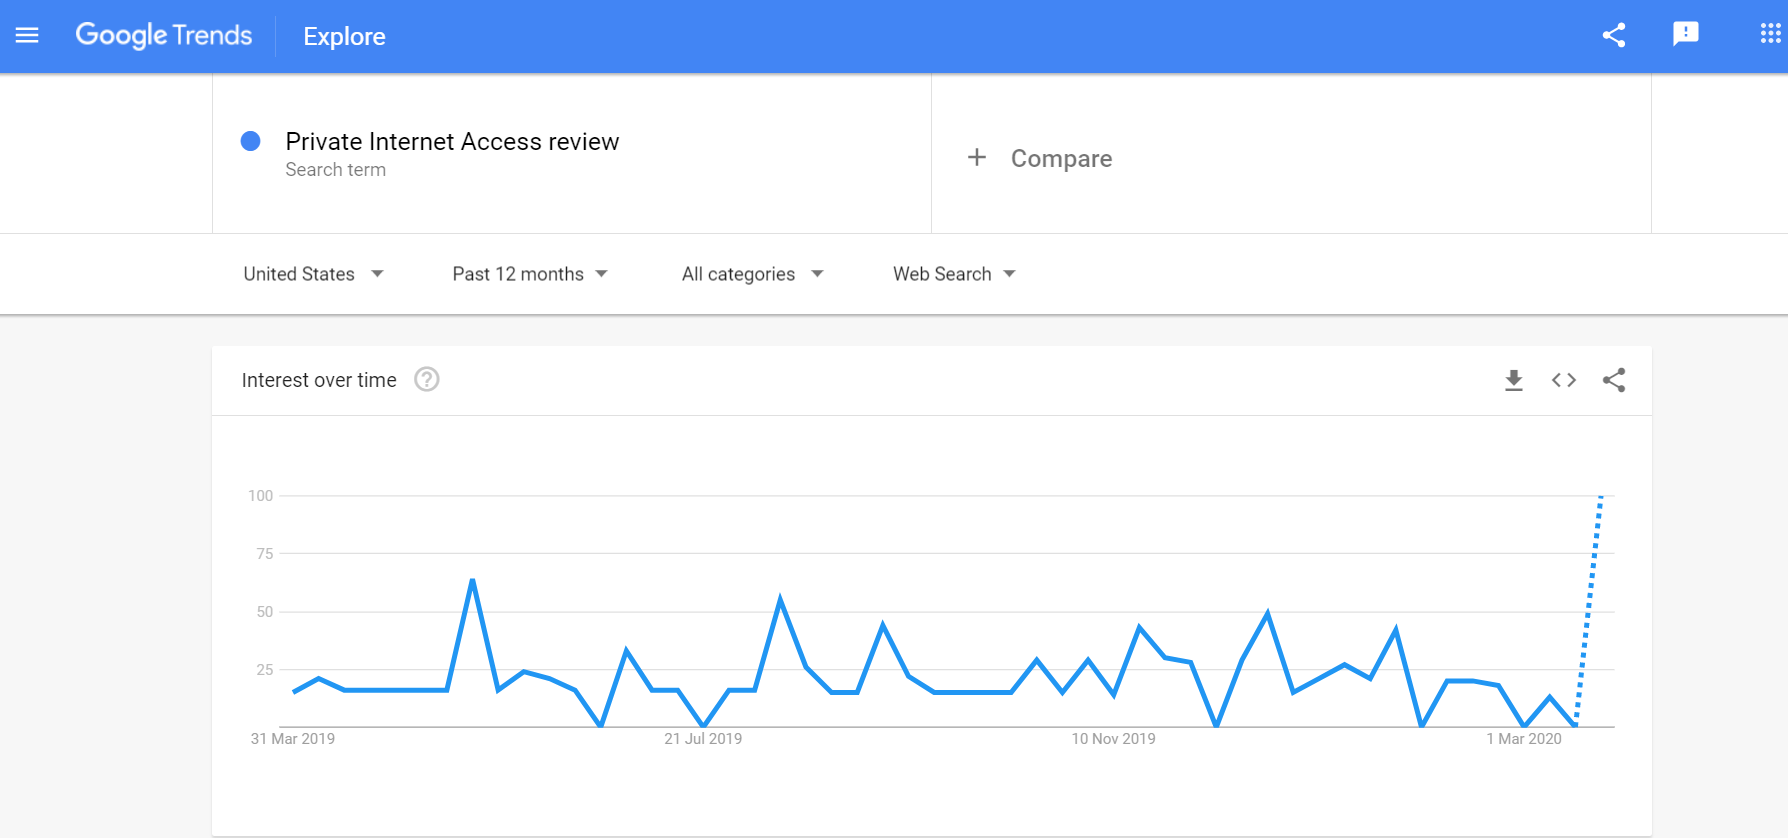 Private Internet Access Review Google Trends